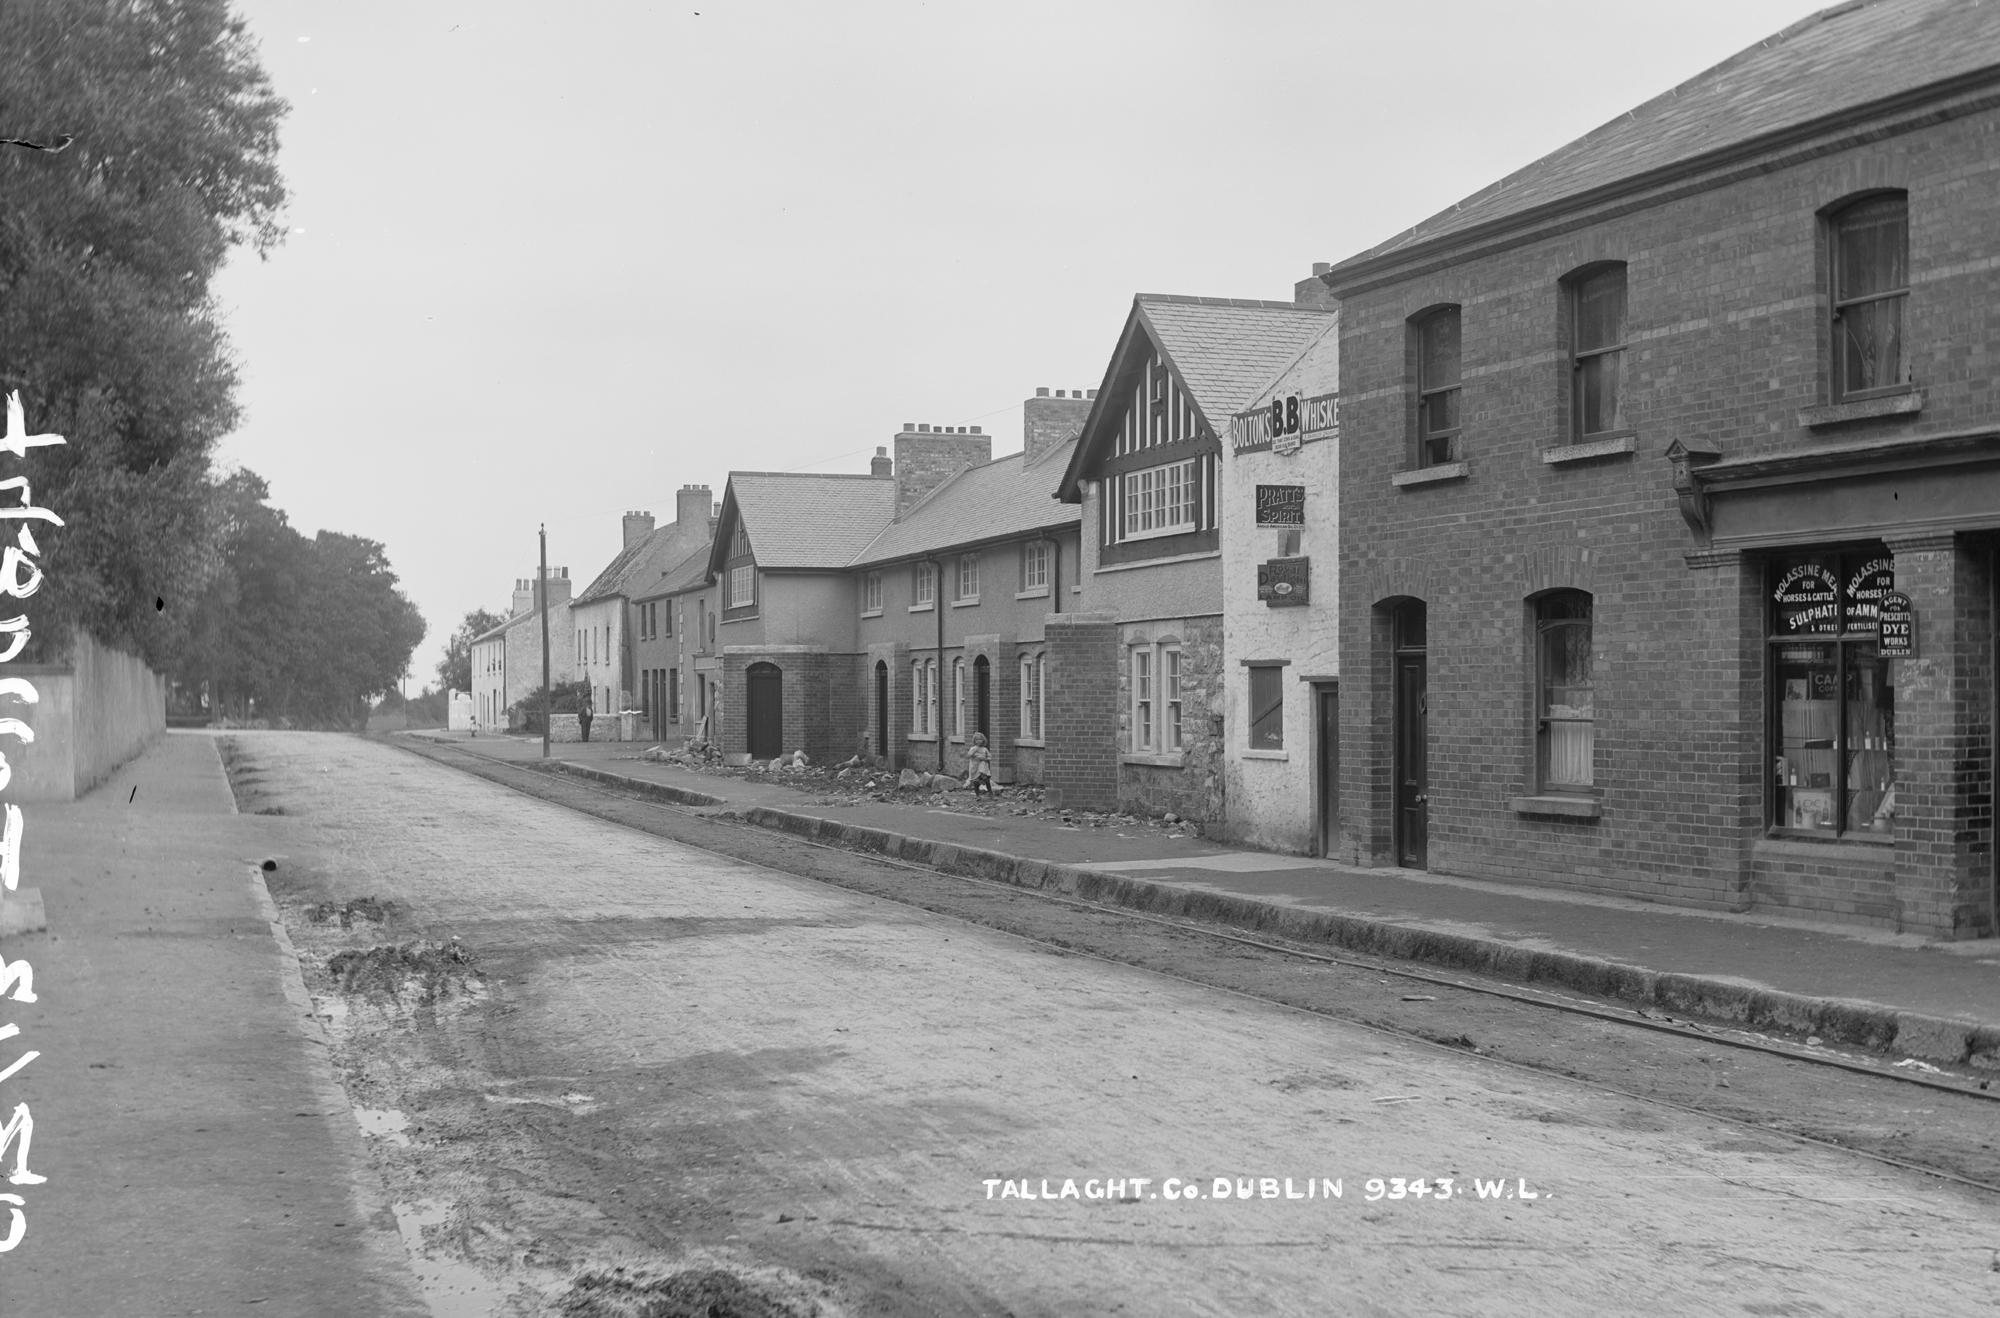 General View, Tallaght, Co. Dublin